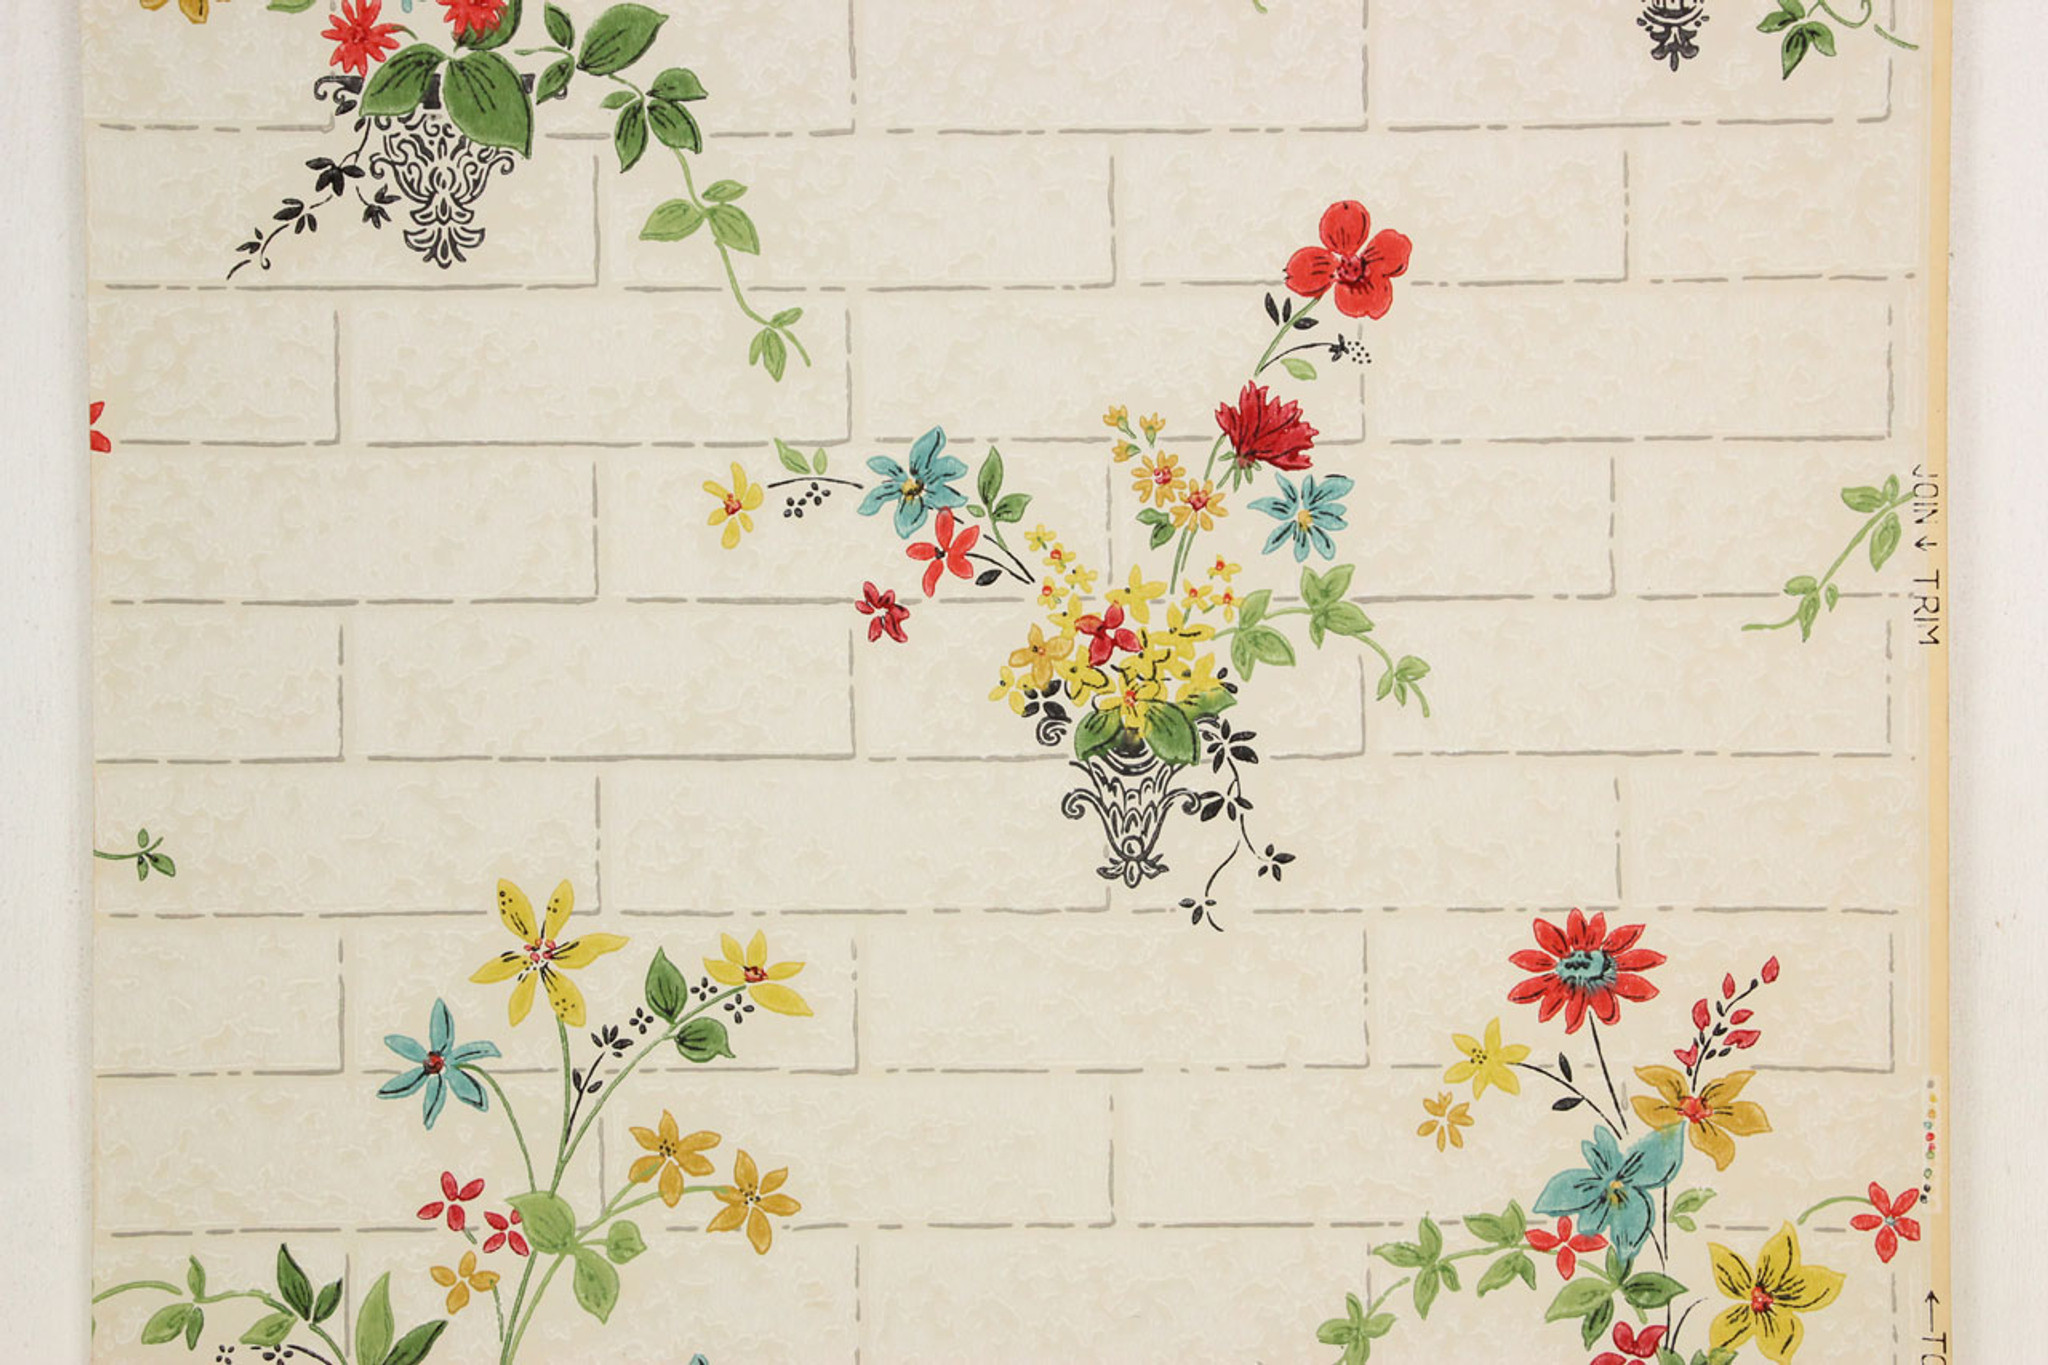 1930s Vintage Wallpaper Flower Bouquets on Tile - Rosie\'s Vintage ...